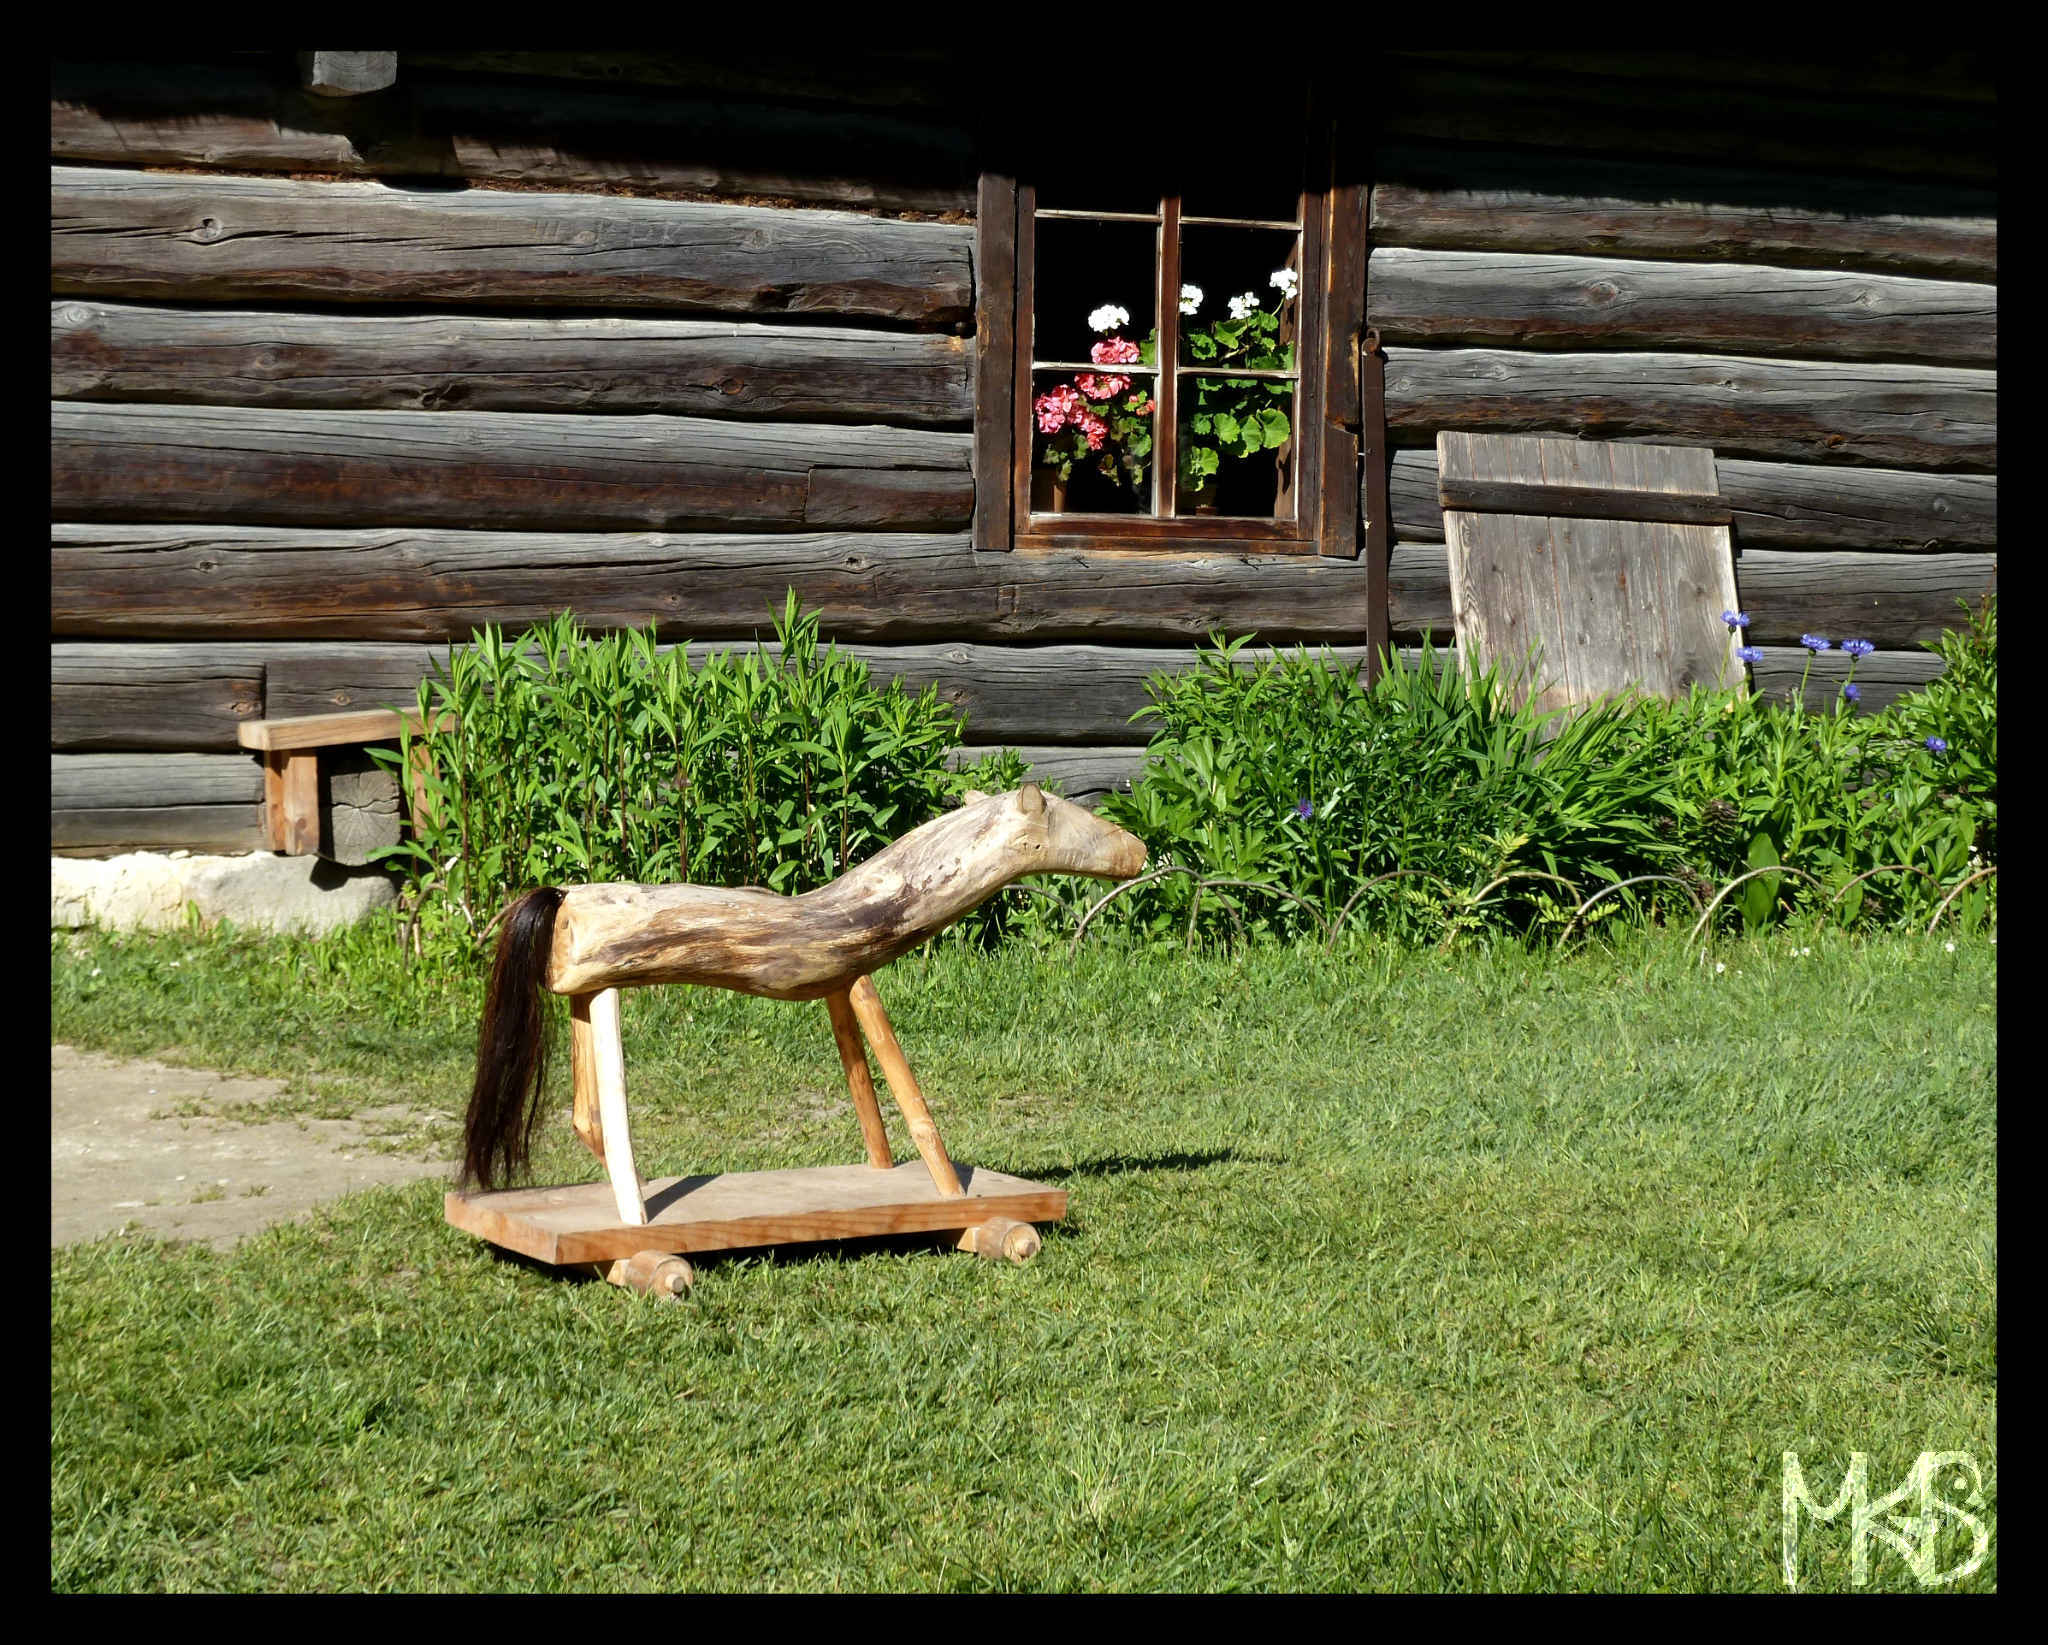 Open Air Museum, Estonia